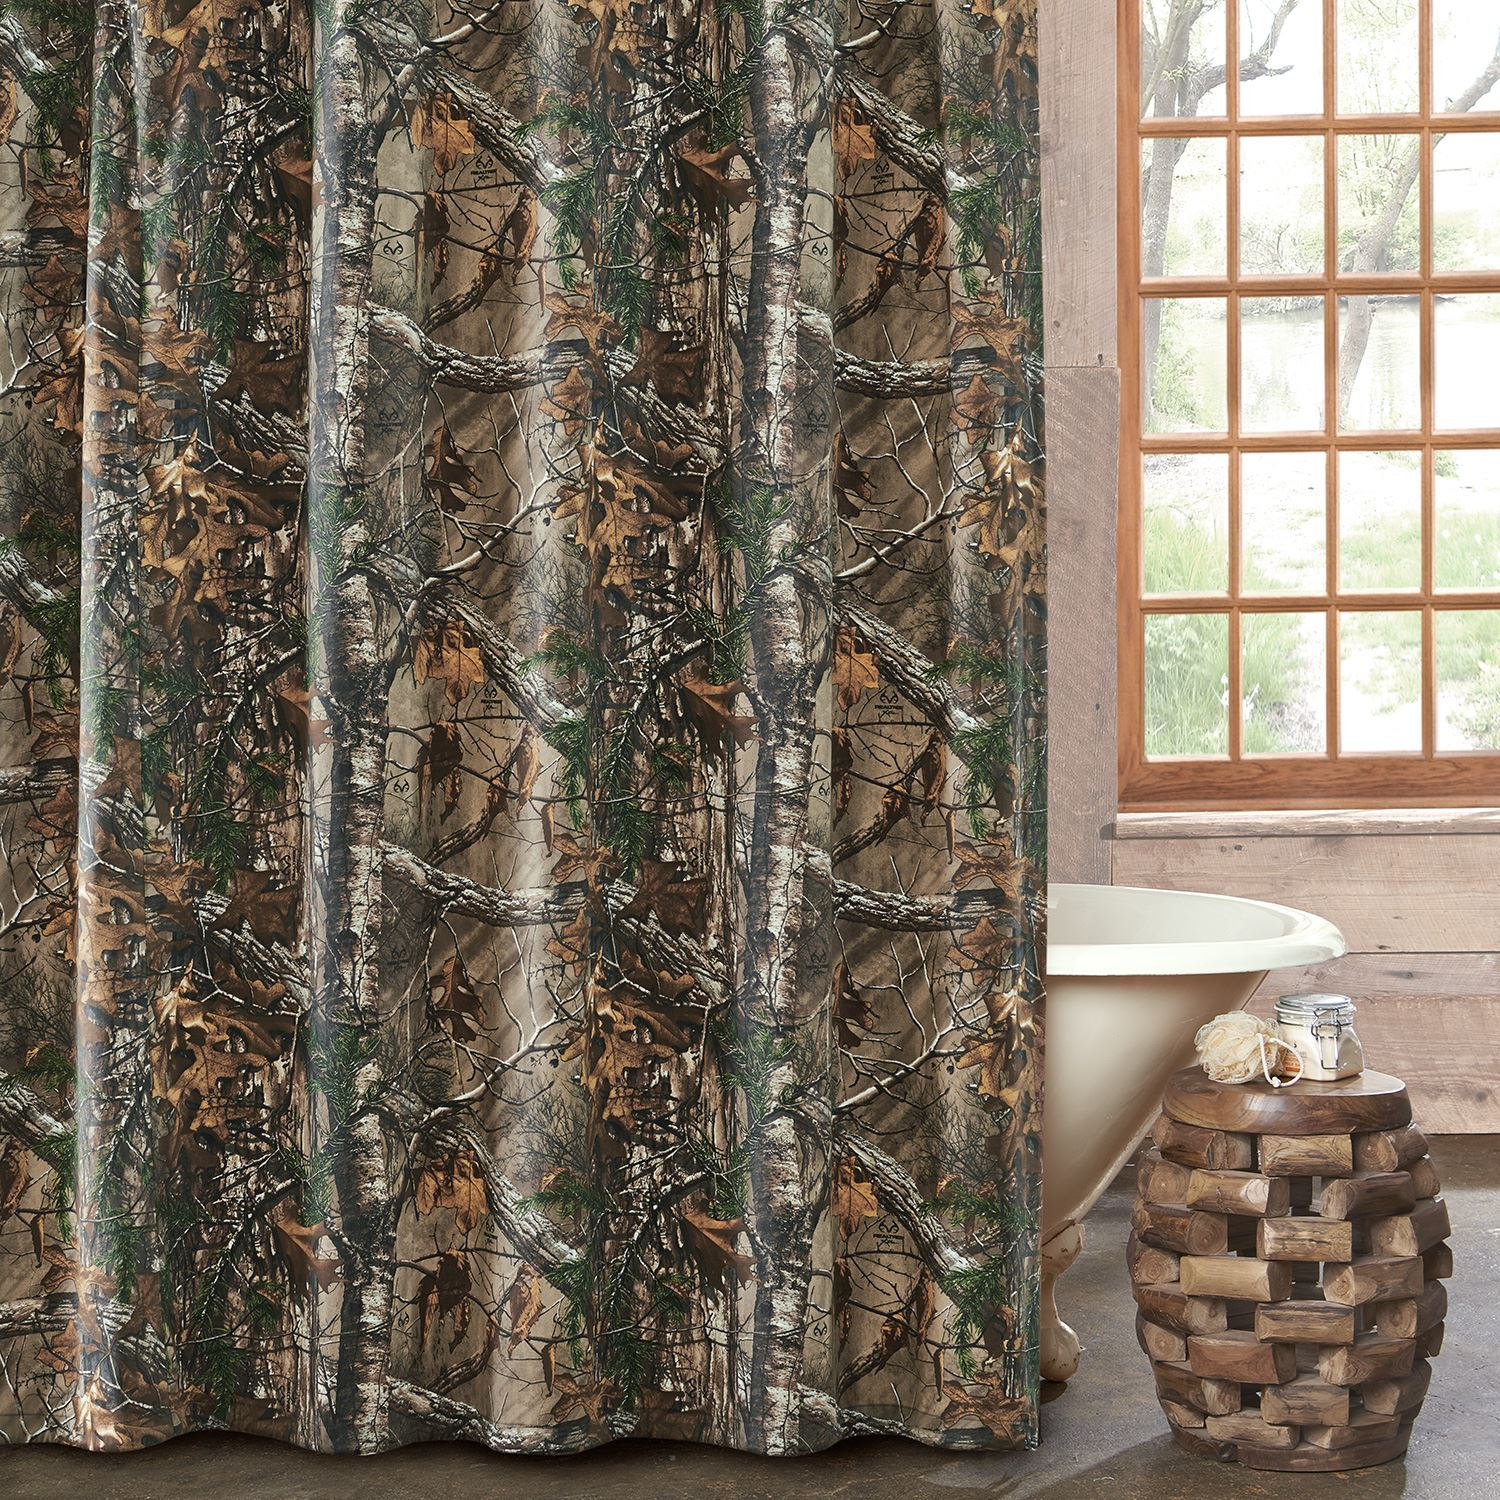 Realtree Xtra Camo Shower Curtain Kimlor Mills Inc with regard to proportions 1500 X 1500